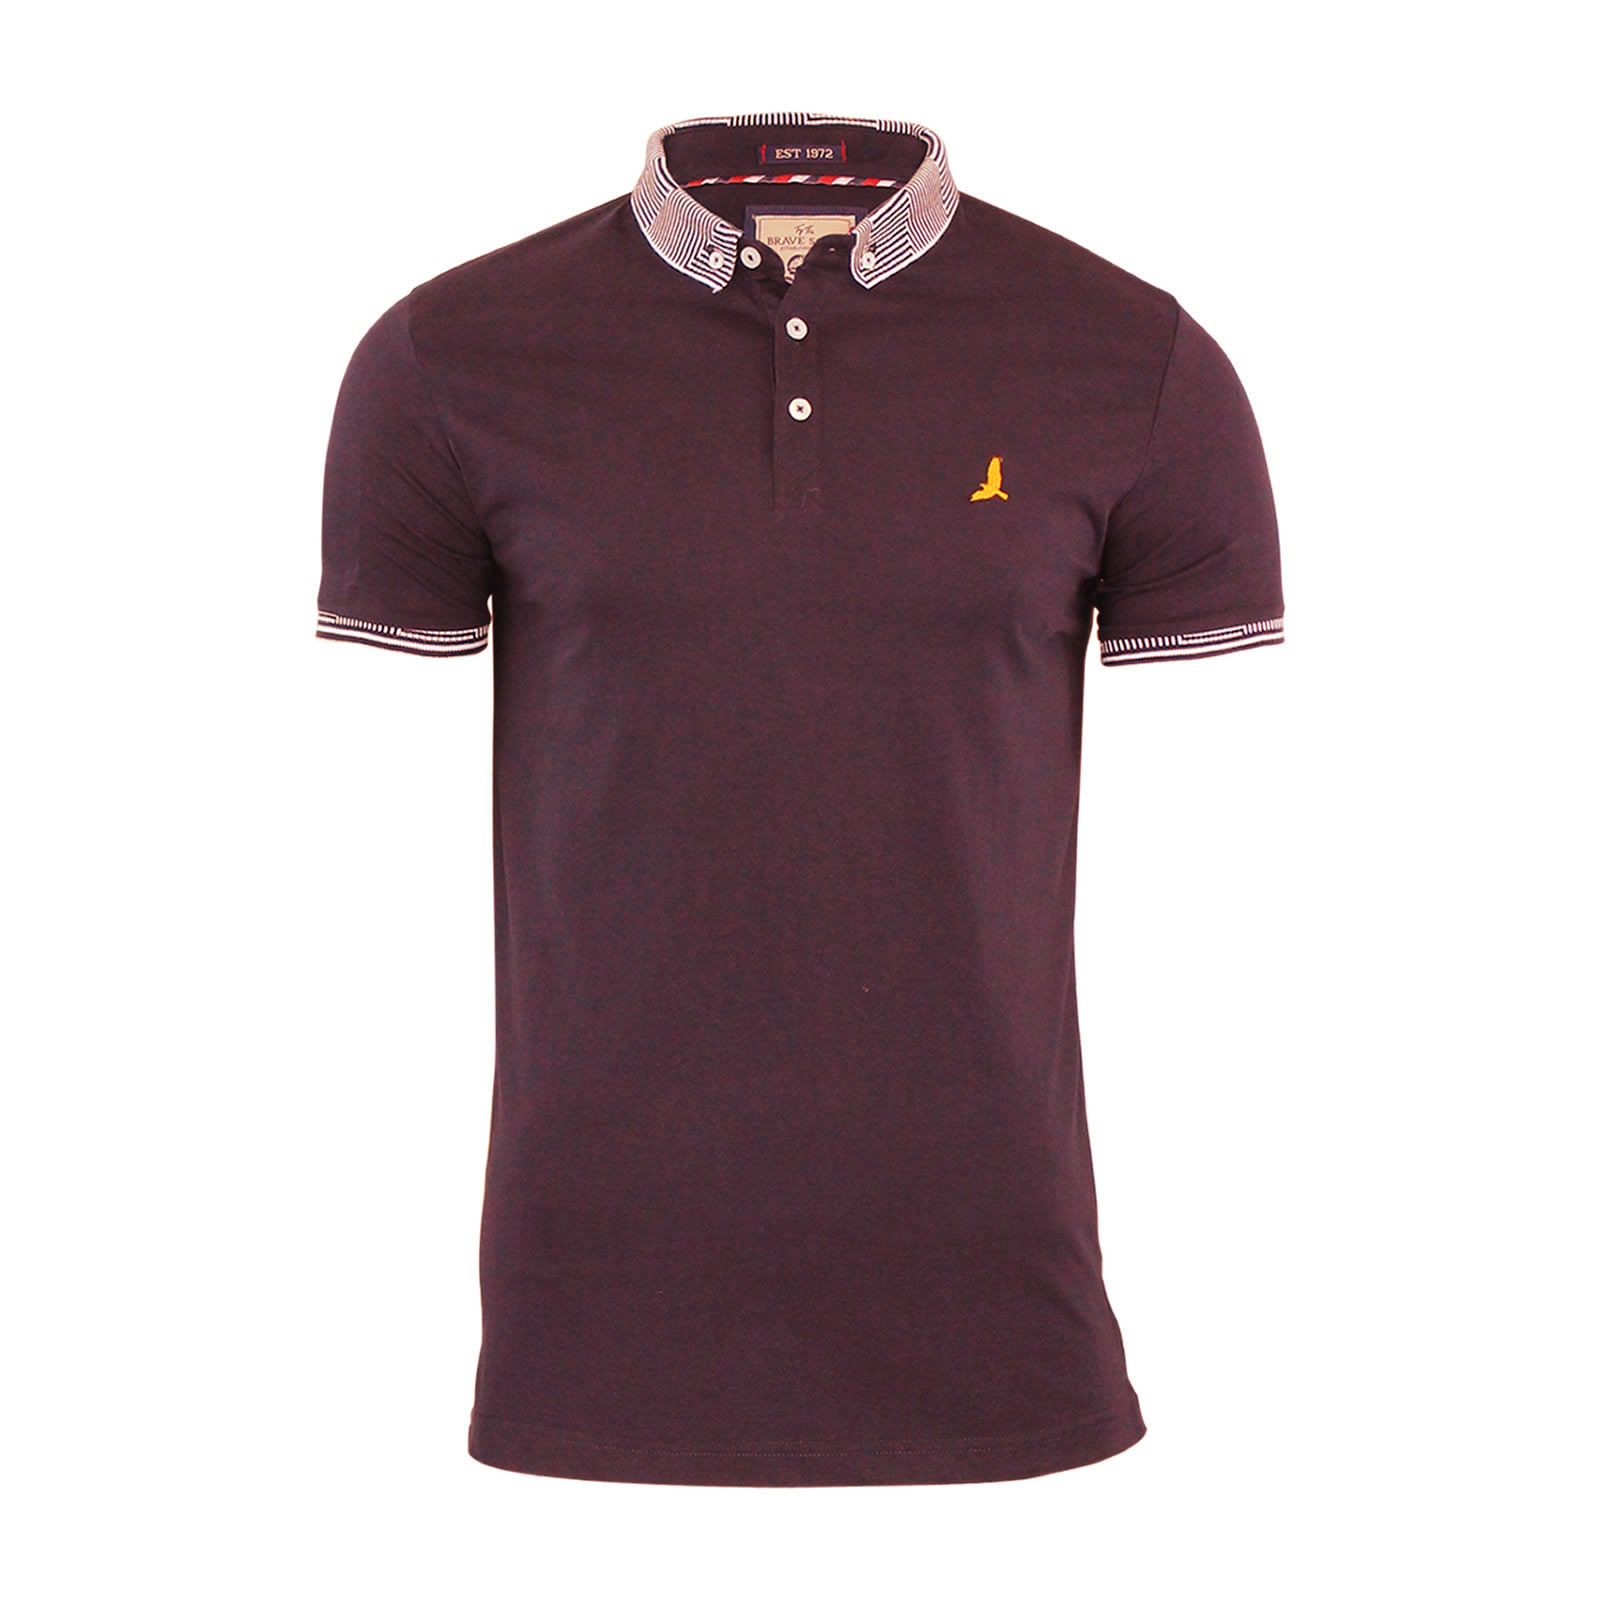 Mens-Polo-T-Shirt-Brave-Soul-Glover-Cotton-Collared-Short-Sleeve-Casual-Top thumbnail 15